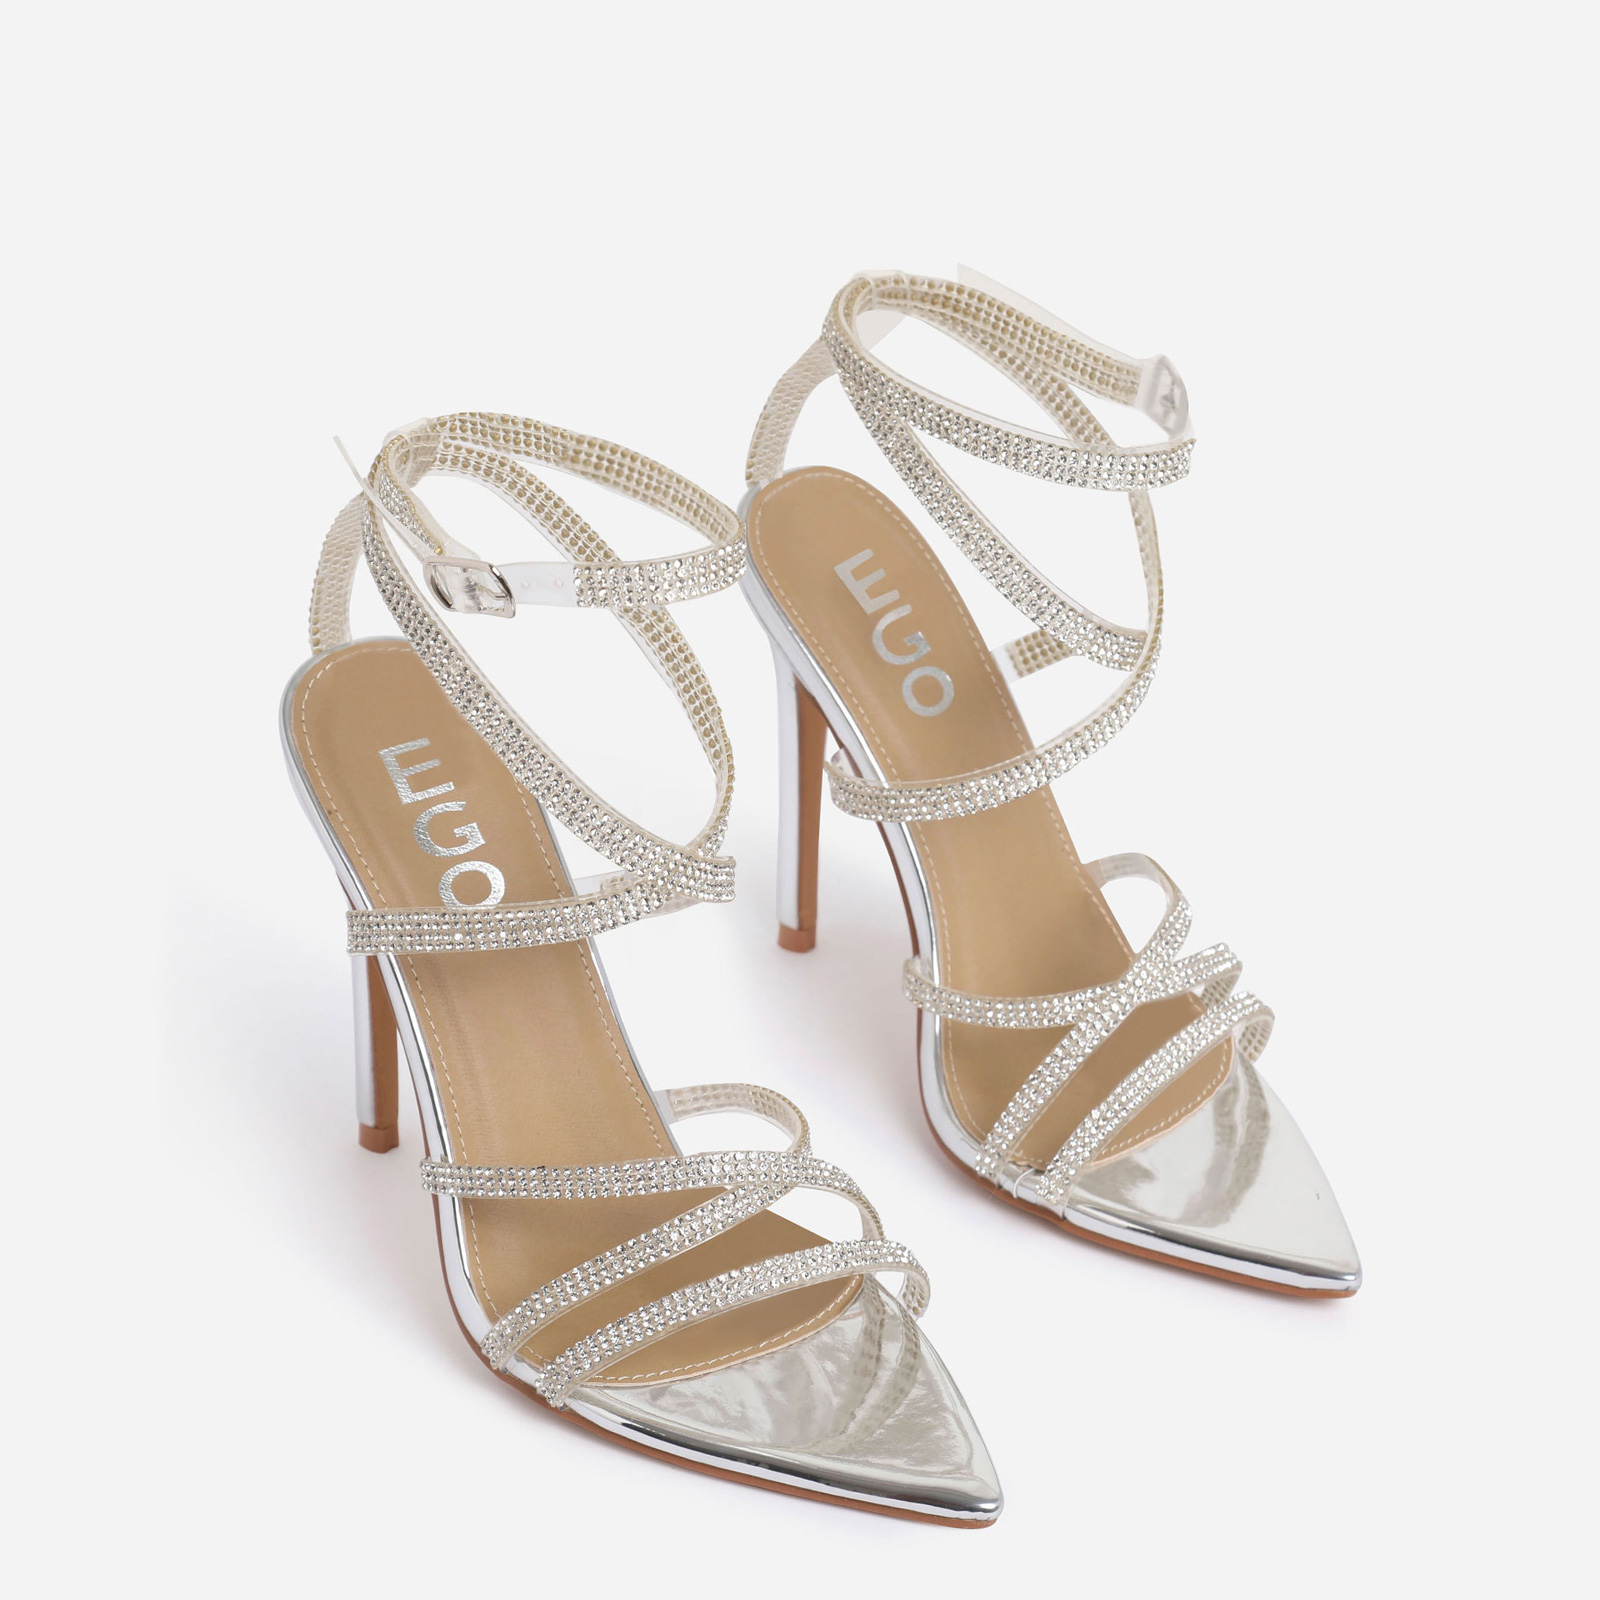 Precious Diamante Detail Pointed Toe Heel In Silver Faux Leather